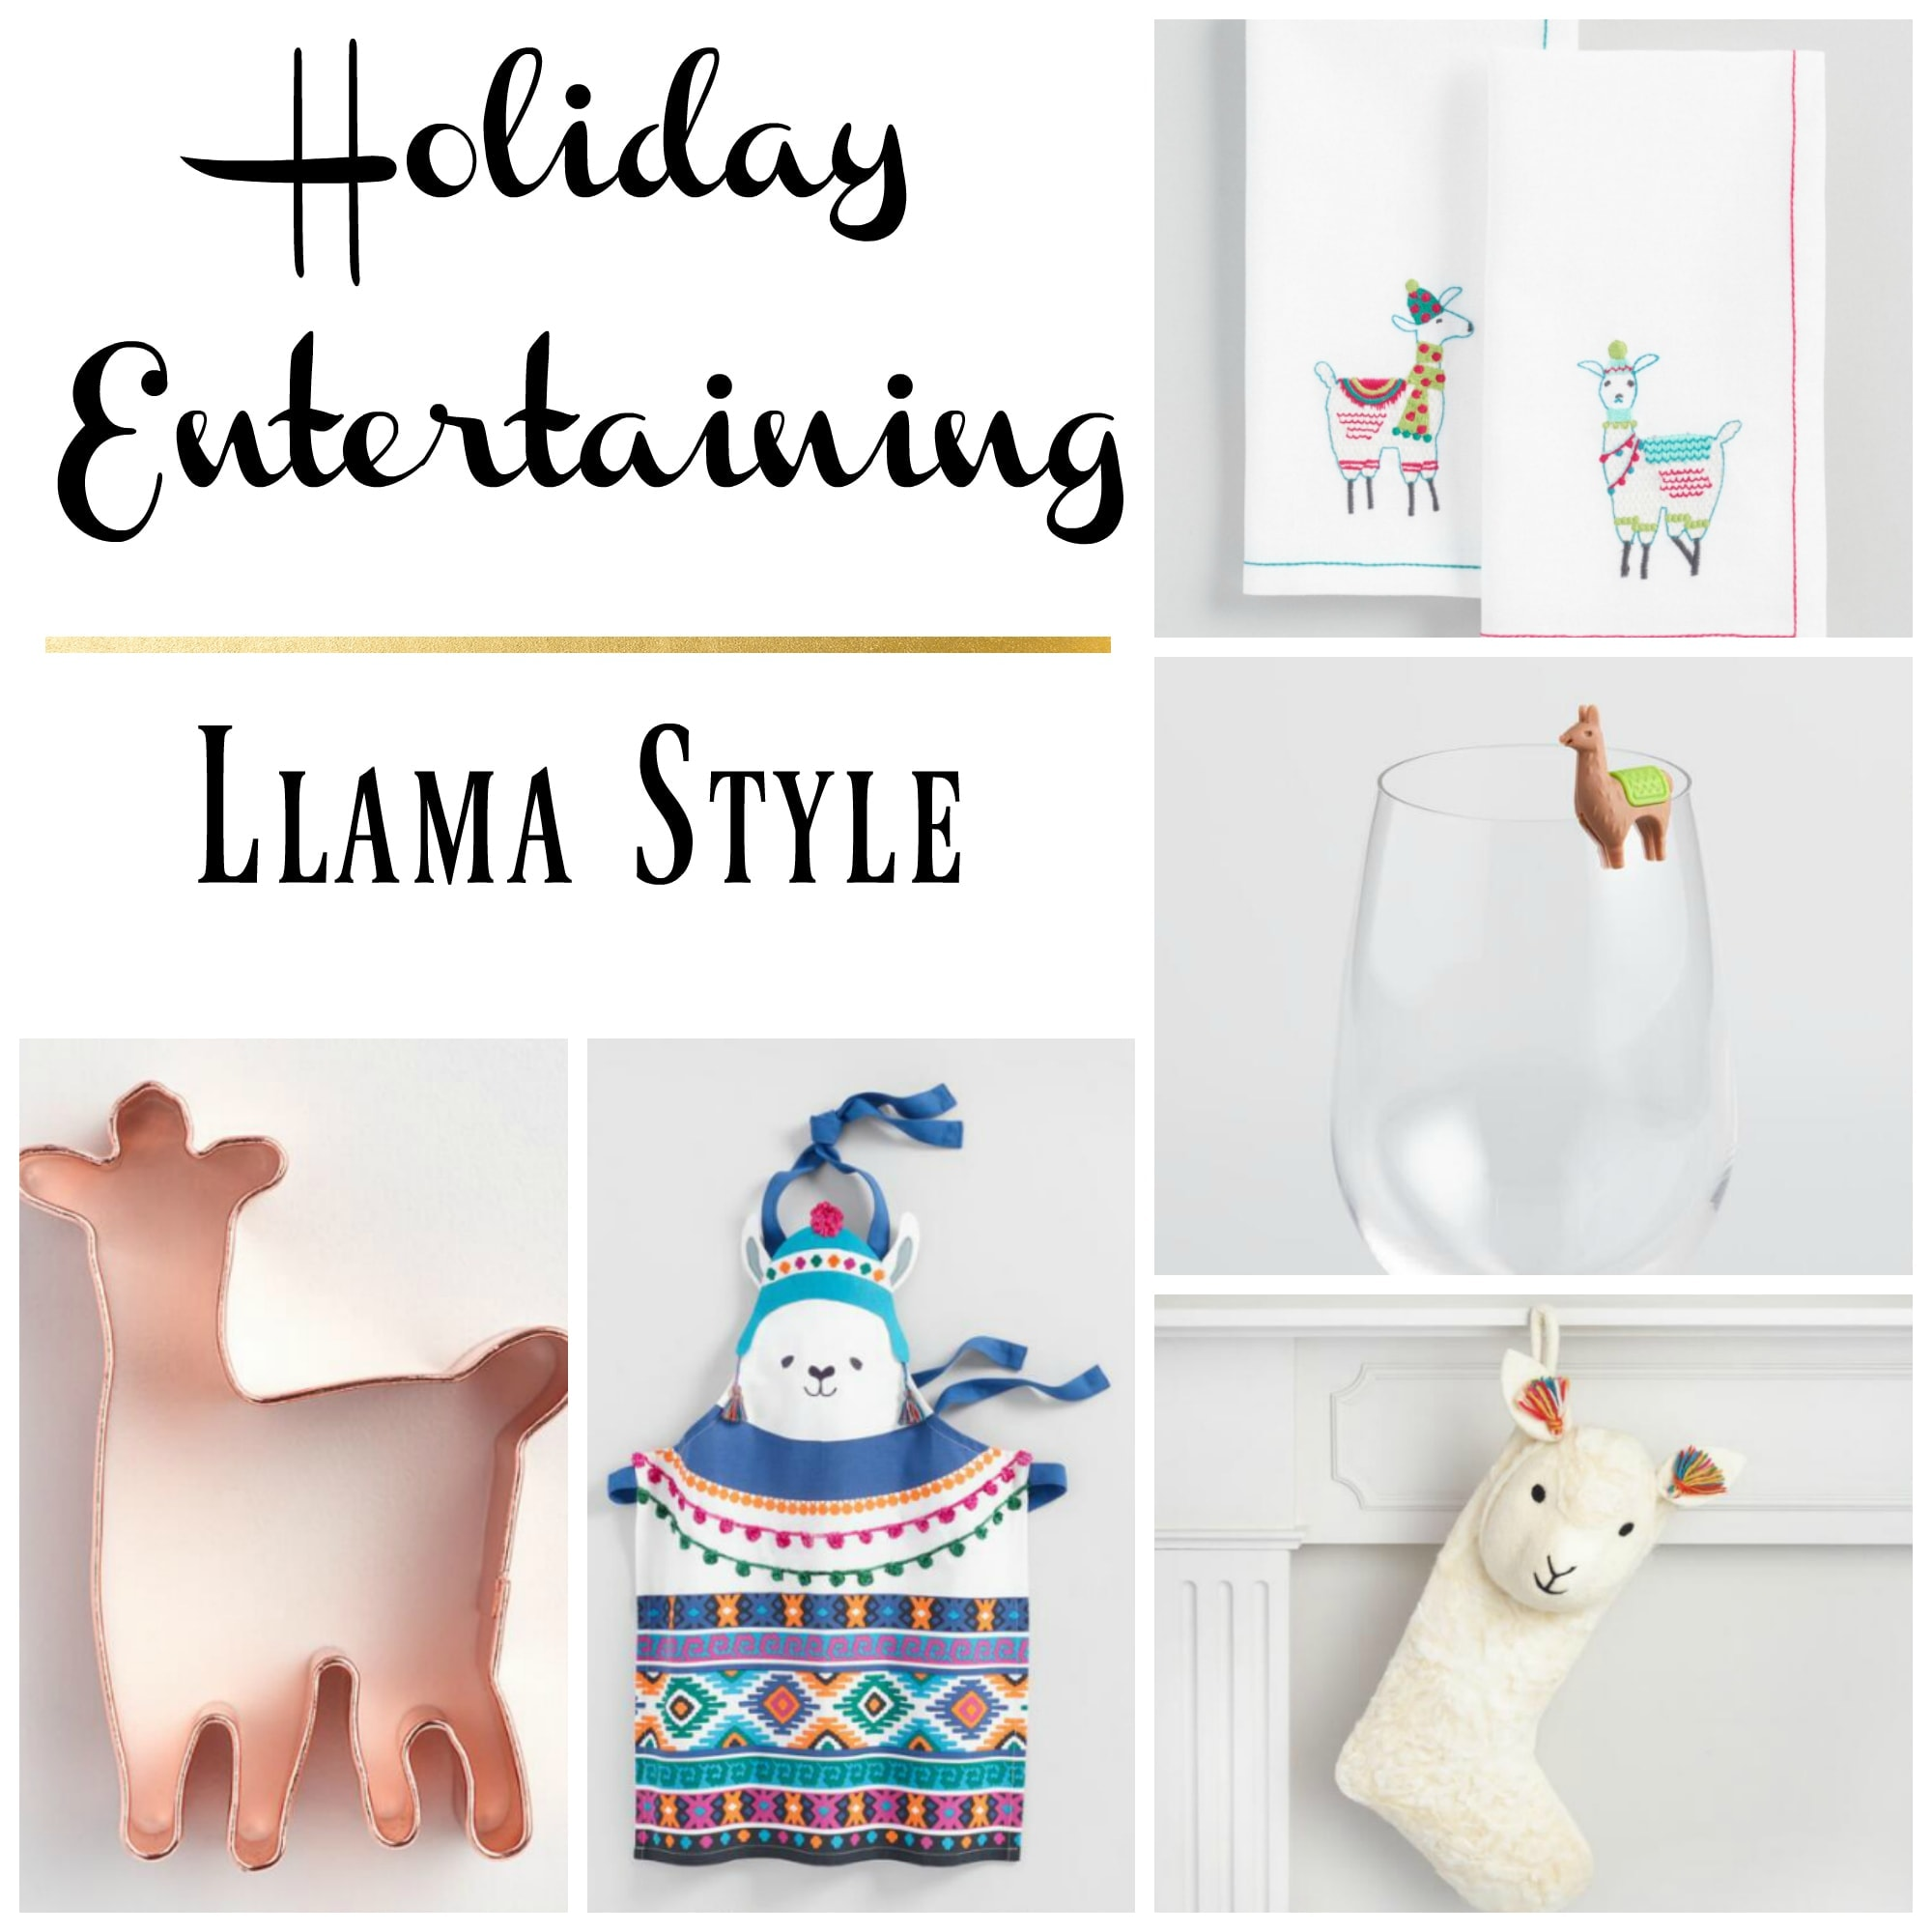 Holiday Entertaining Llama Style - www.refashionablylate.com